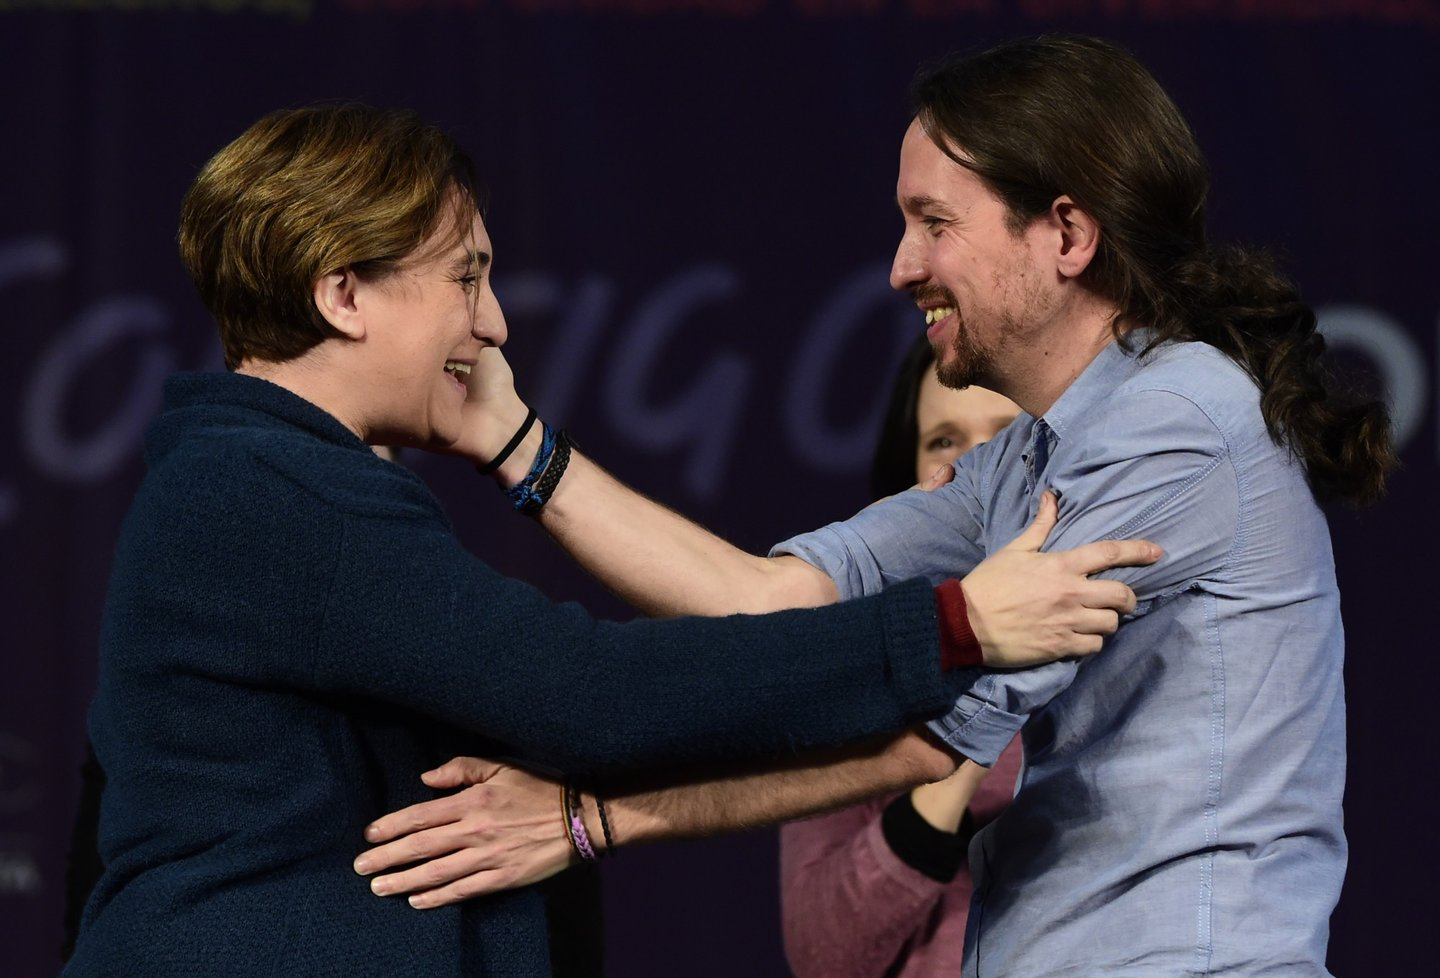 Leader of left wing party Podemos and candidate for the upcoming December 20 general election, Pablo Iglesias (R) hugs Barcelona's Mayor Ada Colau during a campaign meeting in Madrid on December 13, 2015. Public over corruption across the political spectrum, as well as companies, unions, banks, celebrities, and even royalty could cost Spain's traditional parties dearly in upcoming elections as sky-high unemployment and austerity has seen the emergence of two new parties -- the anti-austerity Podemos and centrist Ciudadanos -- both threatening to the two-party monopoly at the polls says sociologist Jose Pablo Ferrandiz of polling institute Metroscopia. AFP PHOTO / JAVIER SORIANO / AFP / JAVIER SORIANO (Photo credit should read JAVIER SORIANO/AFP/Getty Images)